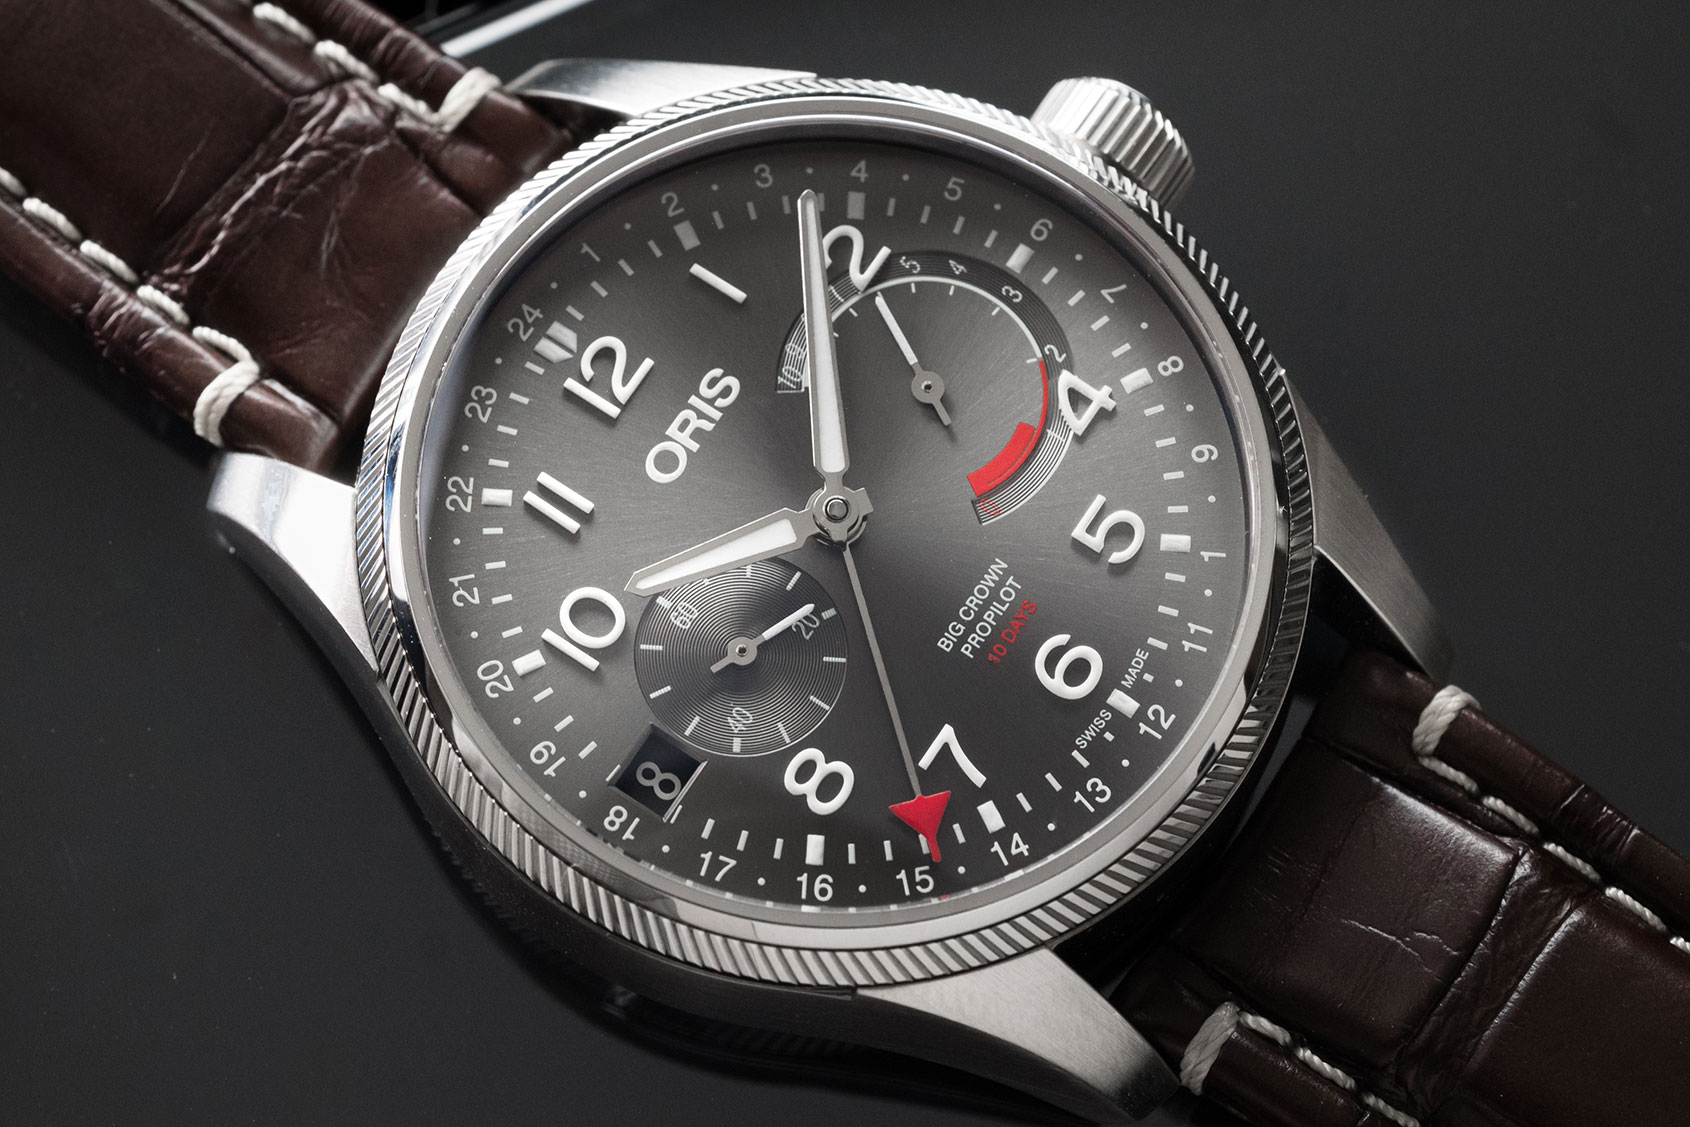 INTRODUCING: The Oris Big Crown ProPilot Calibre 114 ...